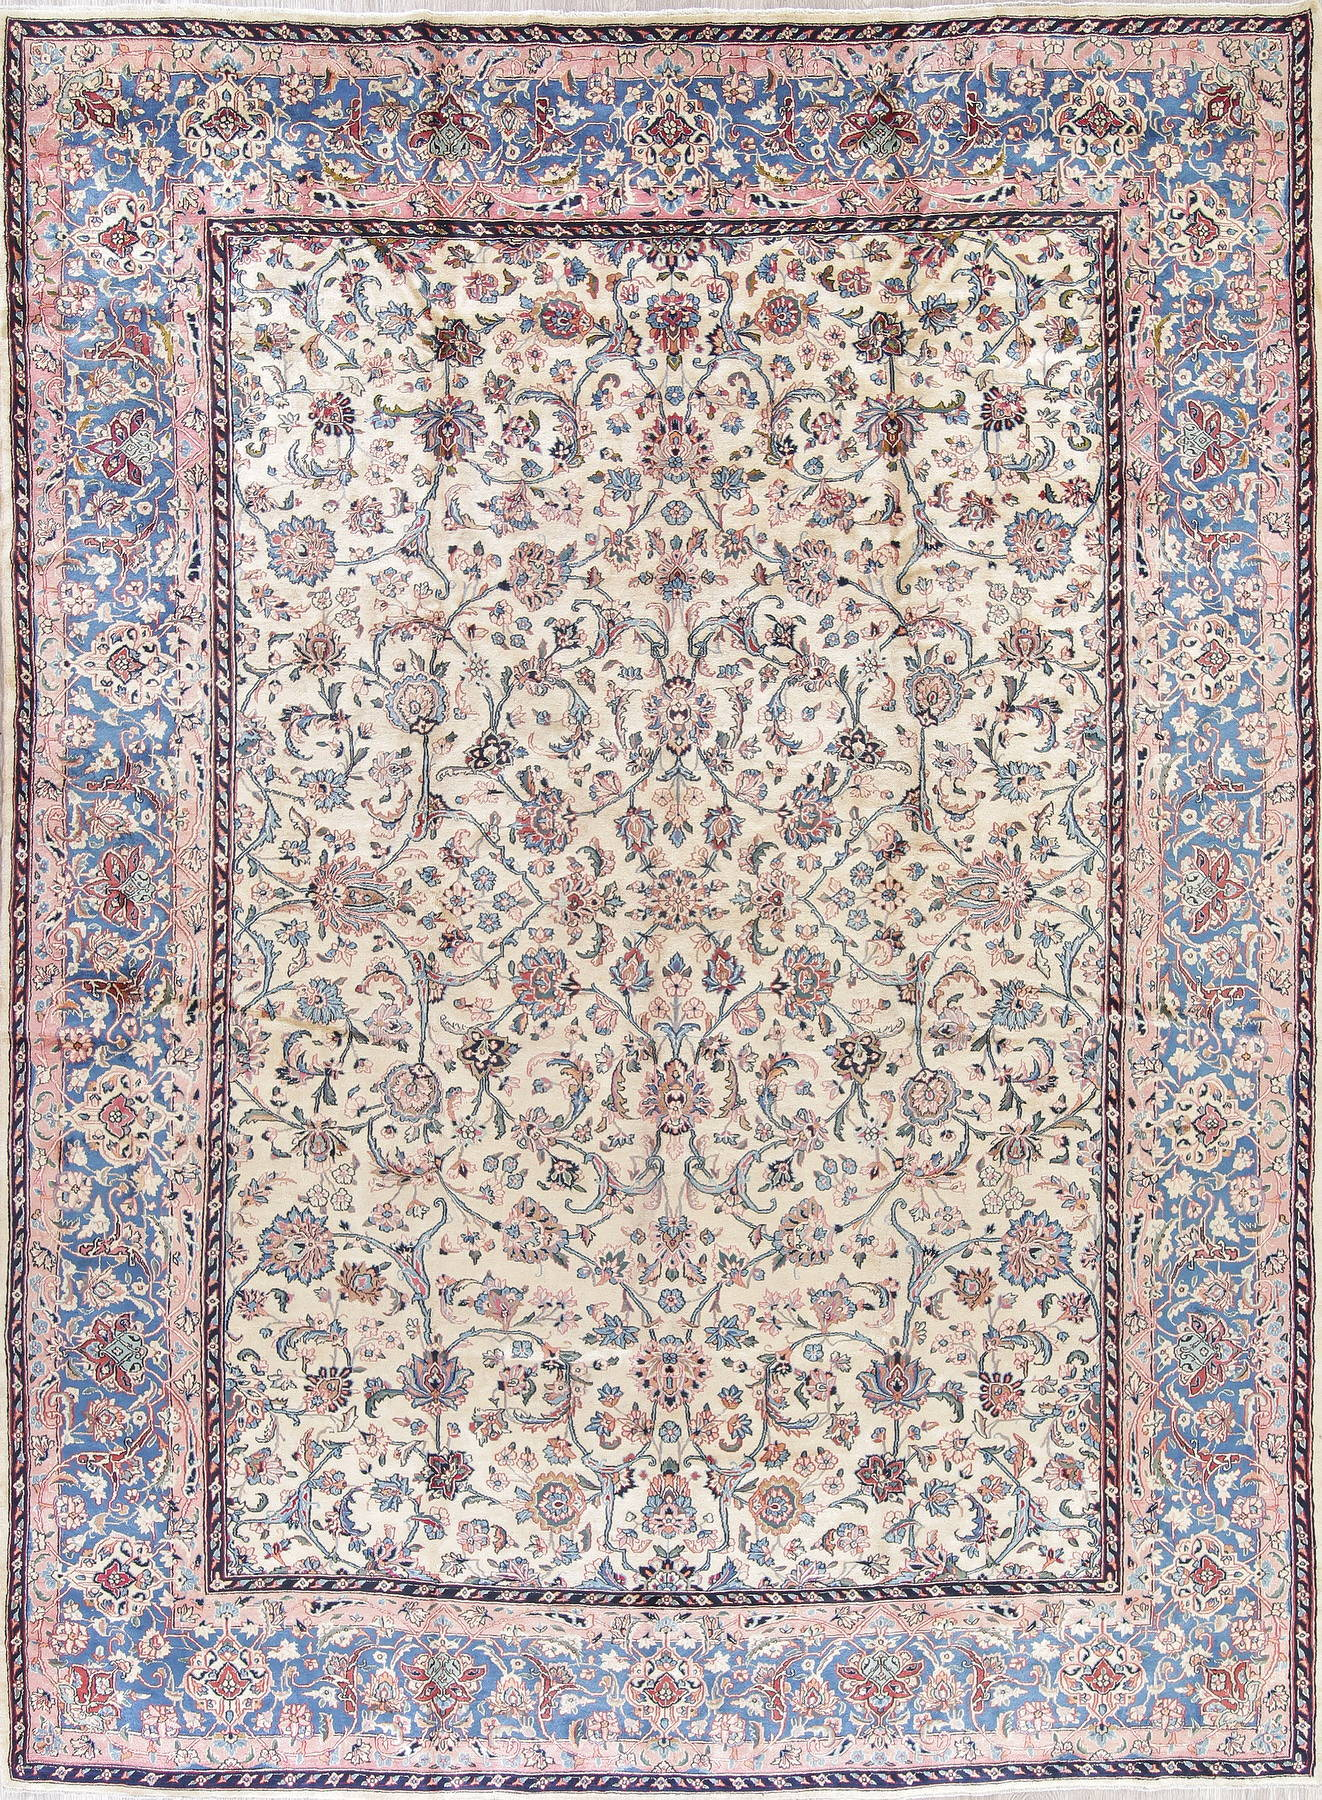 Vegetable Dye Floral Ivory Kerman Persian Hand-Knotted 10x13 Ivory Area Rug